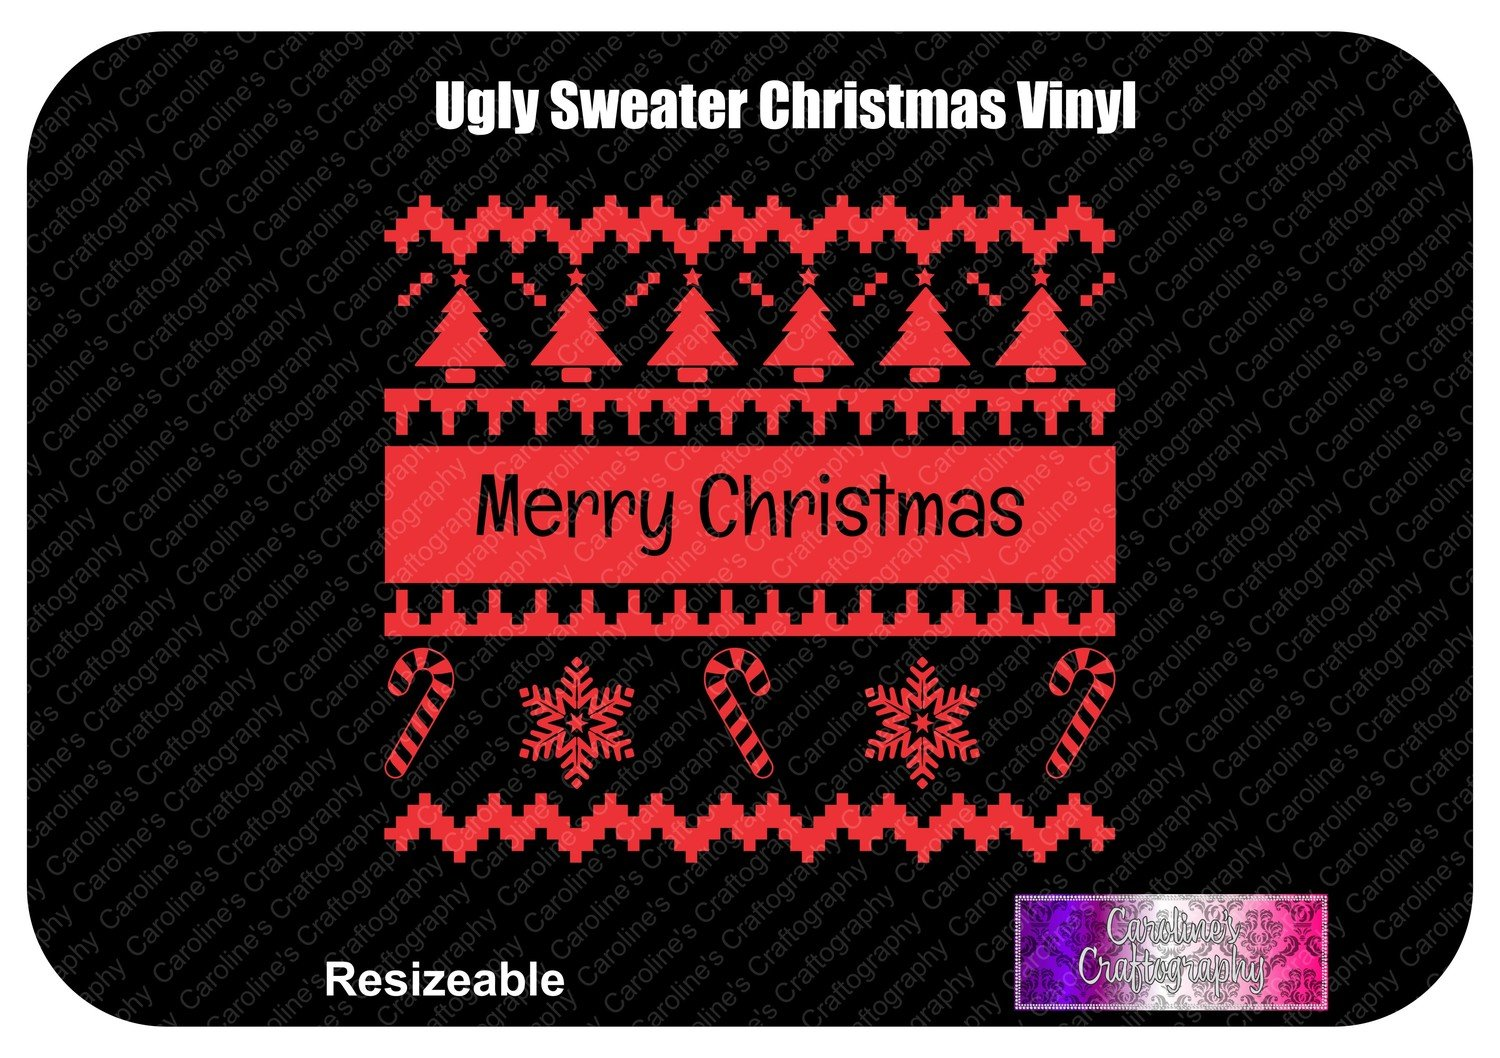 Merry Christmas Ugly Sweater Vinyl